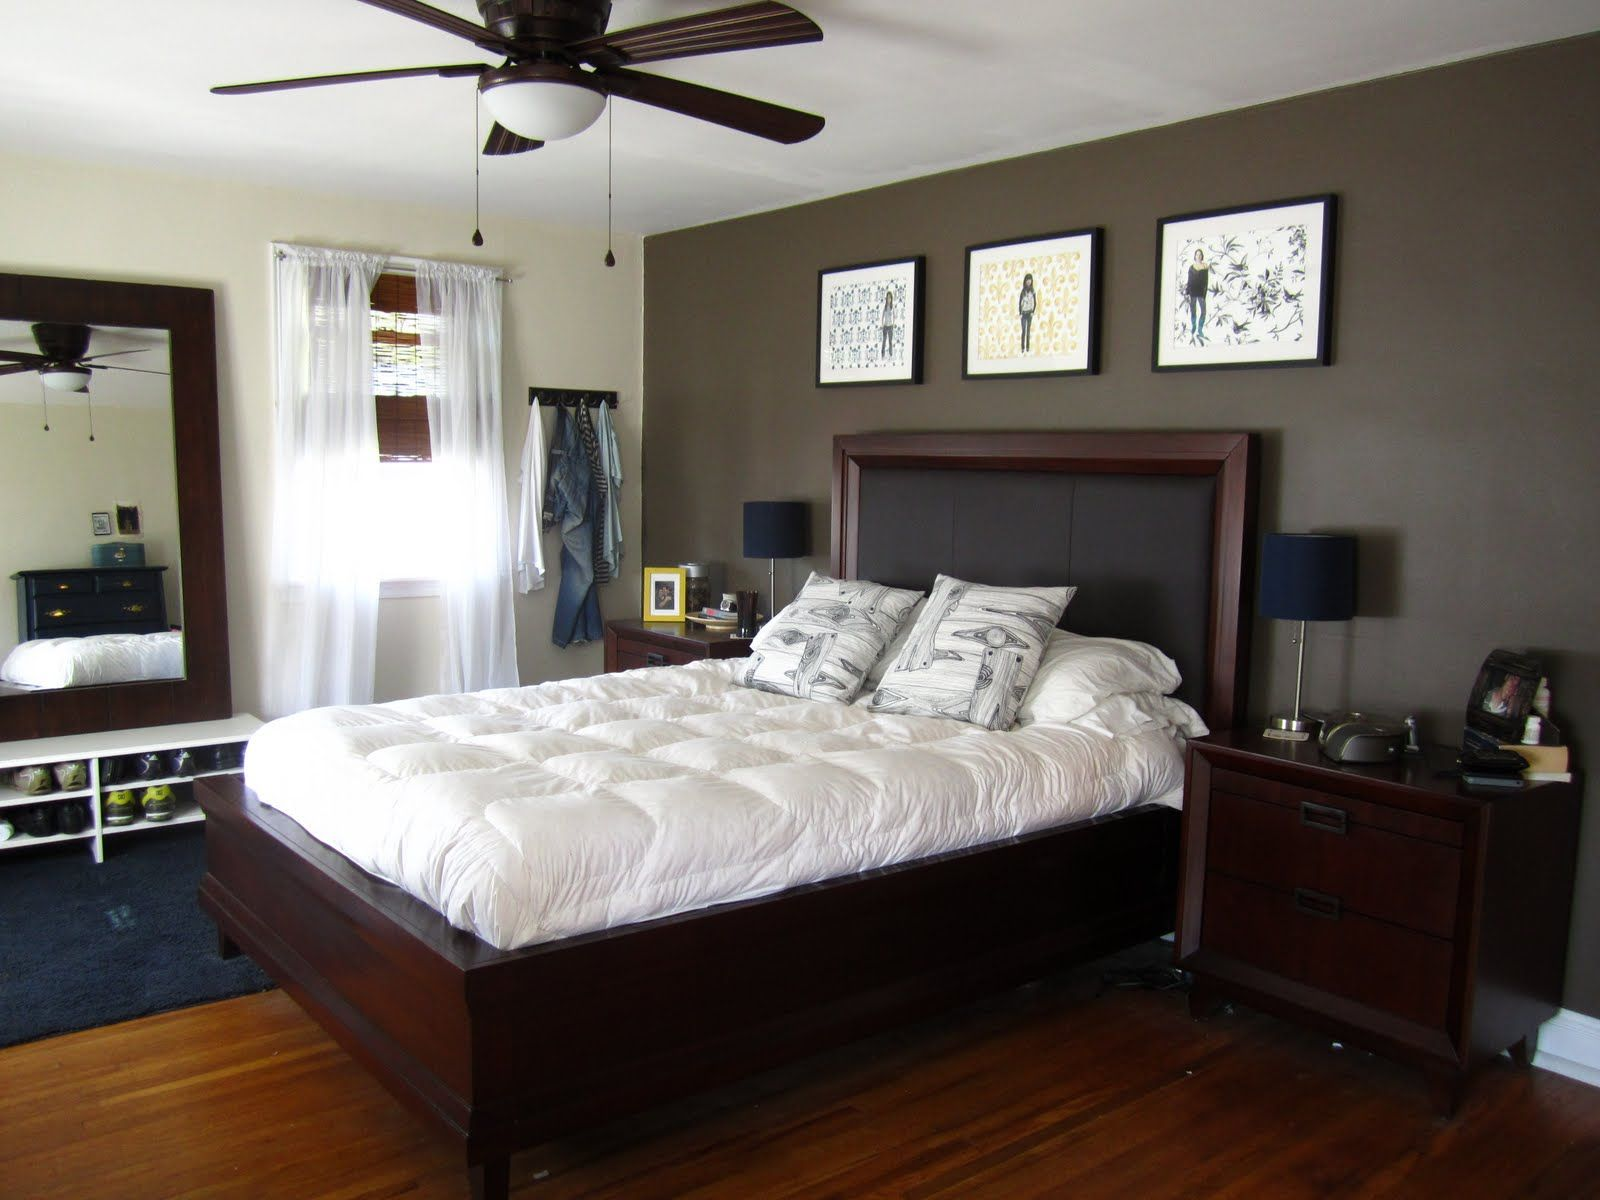 Sherwin Williams Urbane Bronze Bedroom Pinterest Bedrooms Green Accent Walls And Bedroom